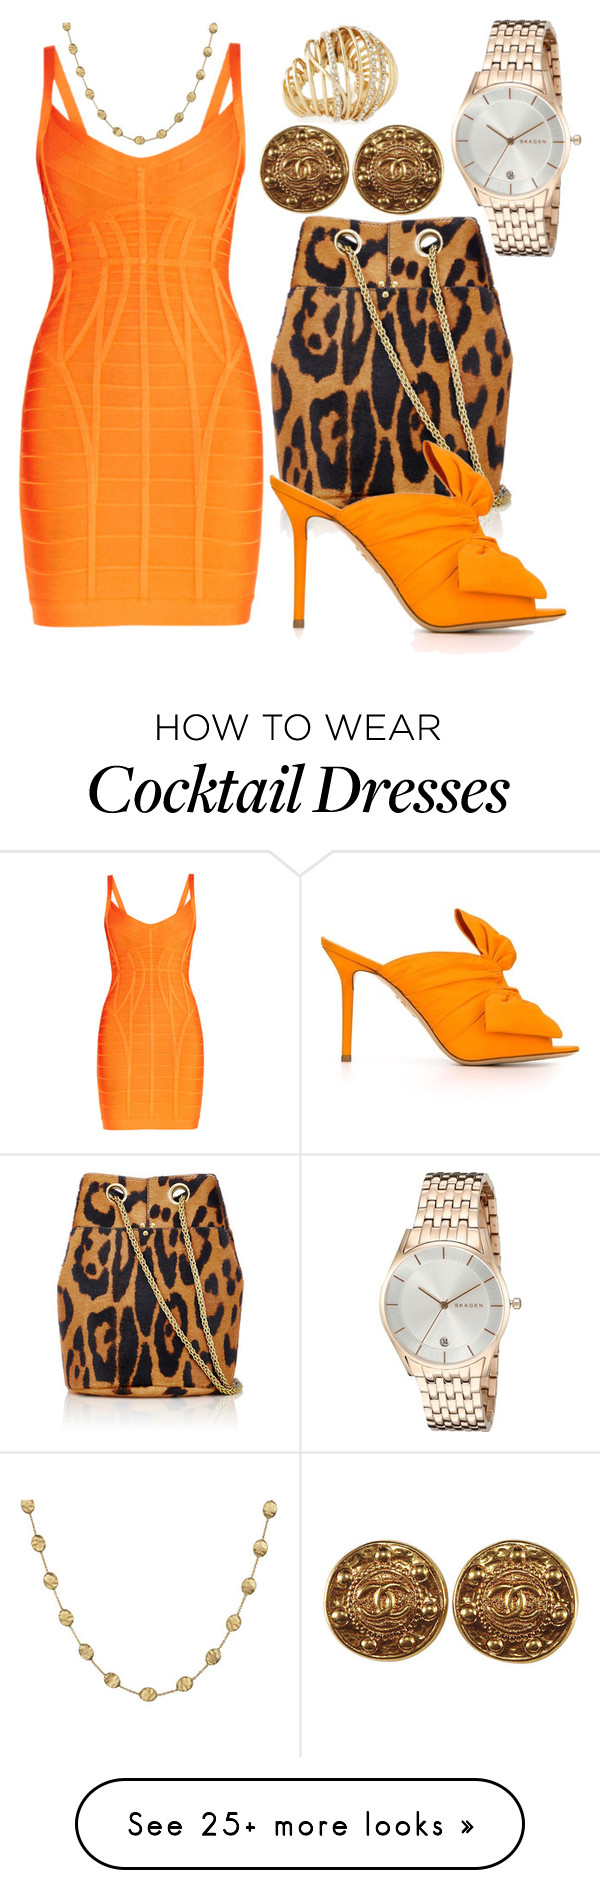 """Mind Your Business, Then Your Manners"" by chelsofly on Polyvore featuring Marco Bicego, Jérôme Dreyfuss, Hervé Léger, Charlotte Olympia, Alexis Bittar, Skagen and cocktaillooks"